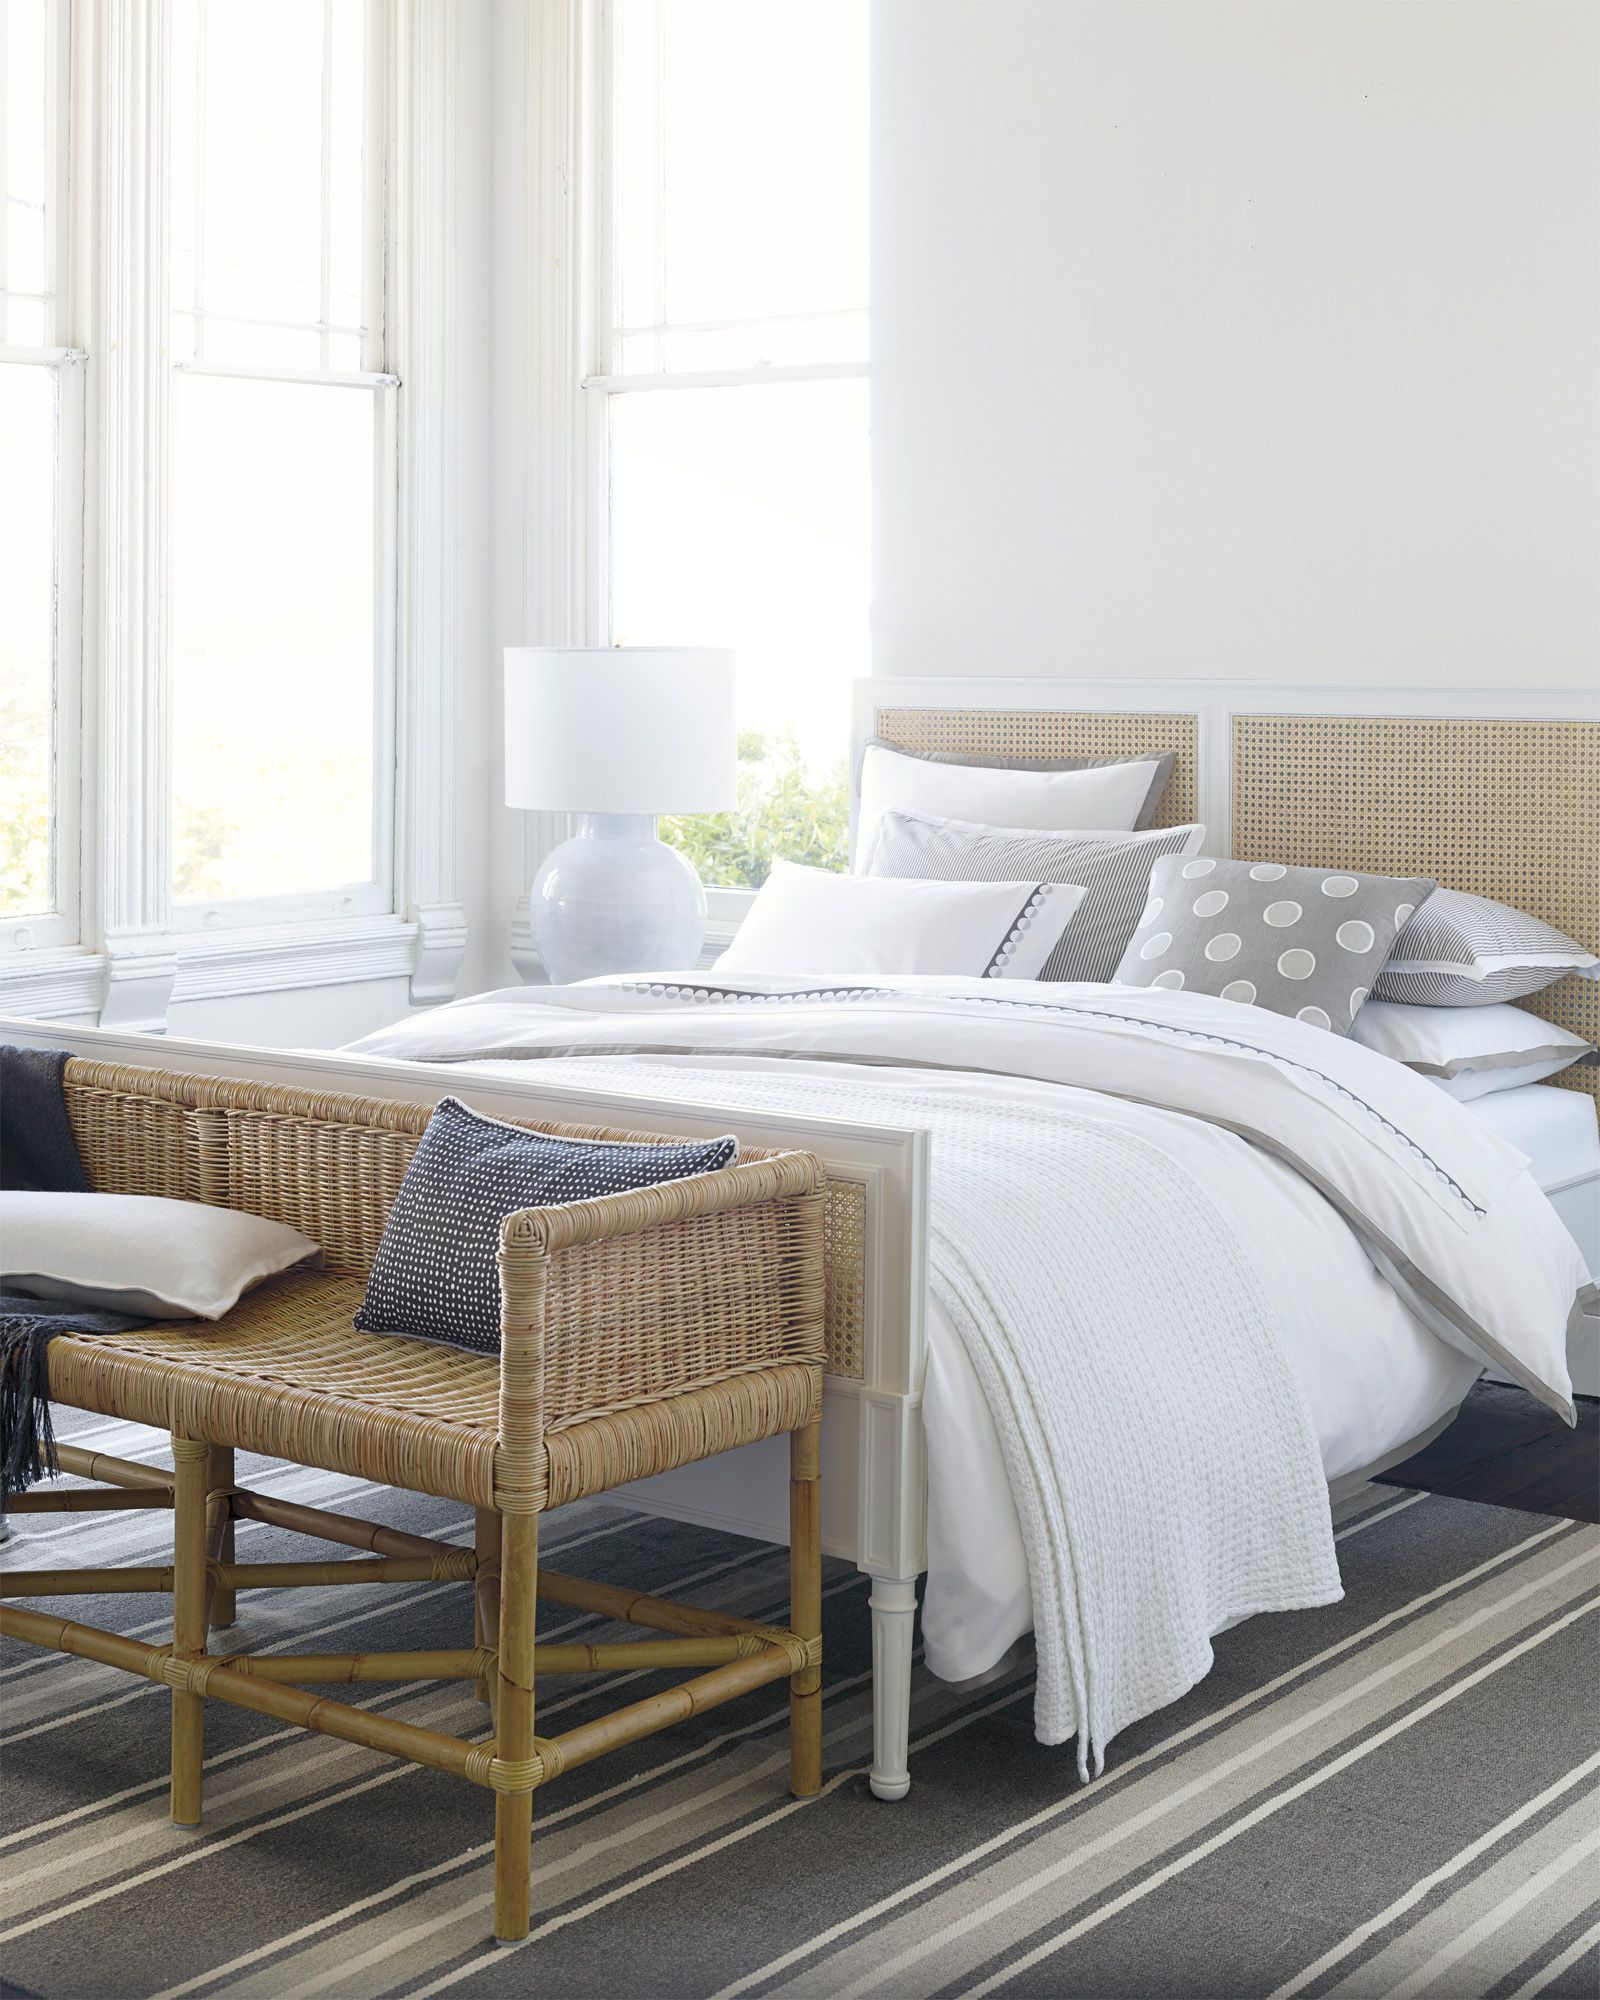 Relaxed Amp In Neutral Harbour Cane Bed Via Serena And